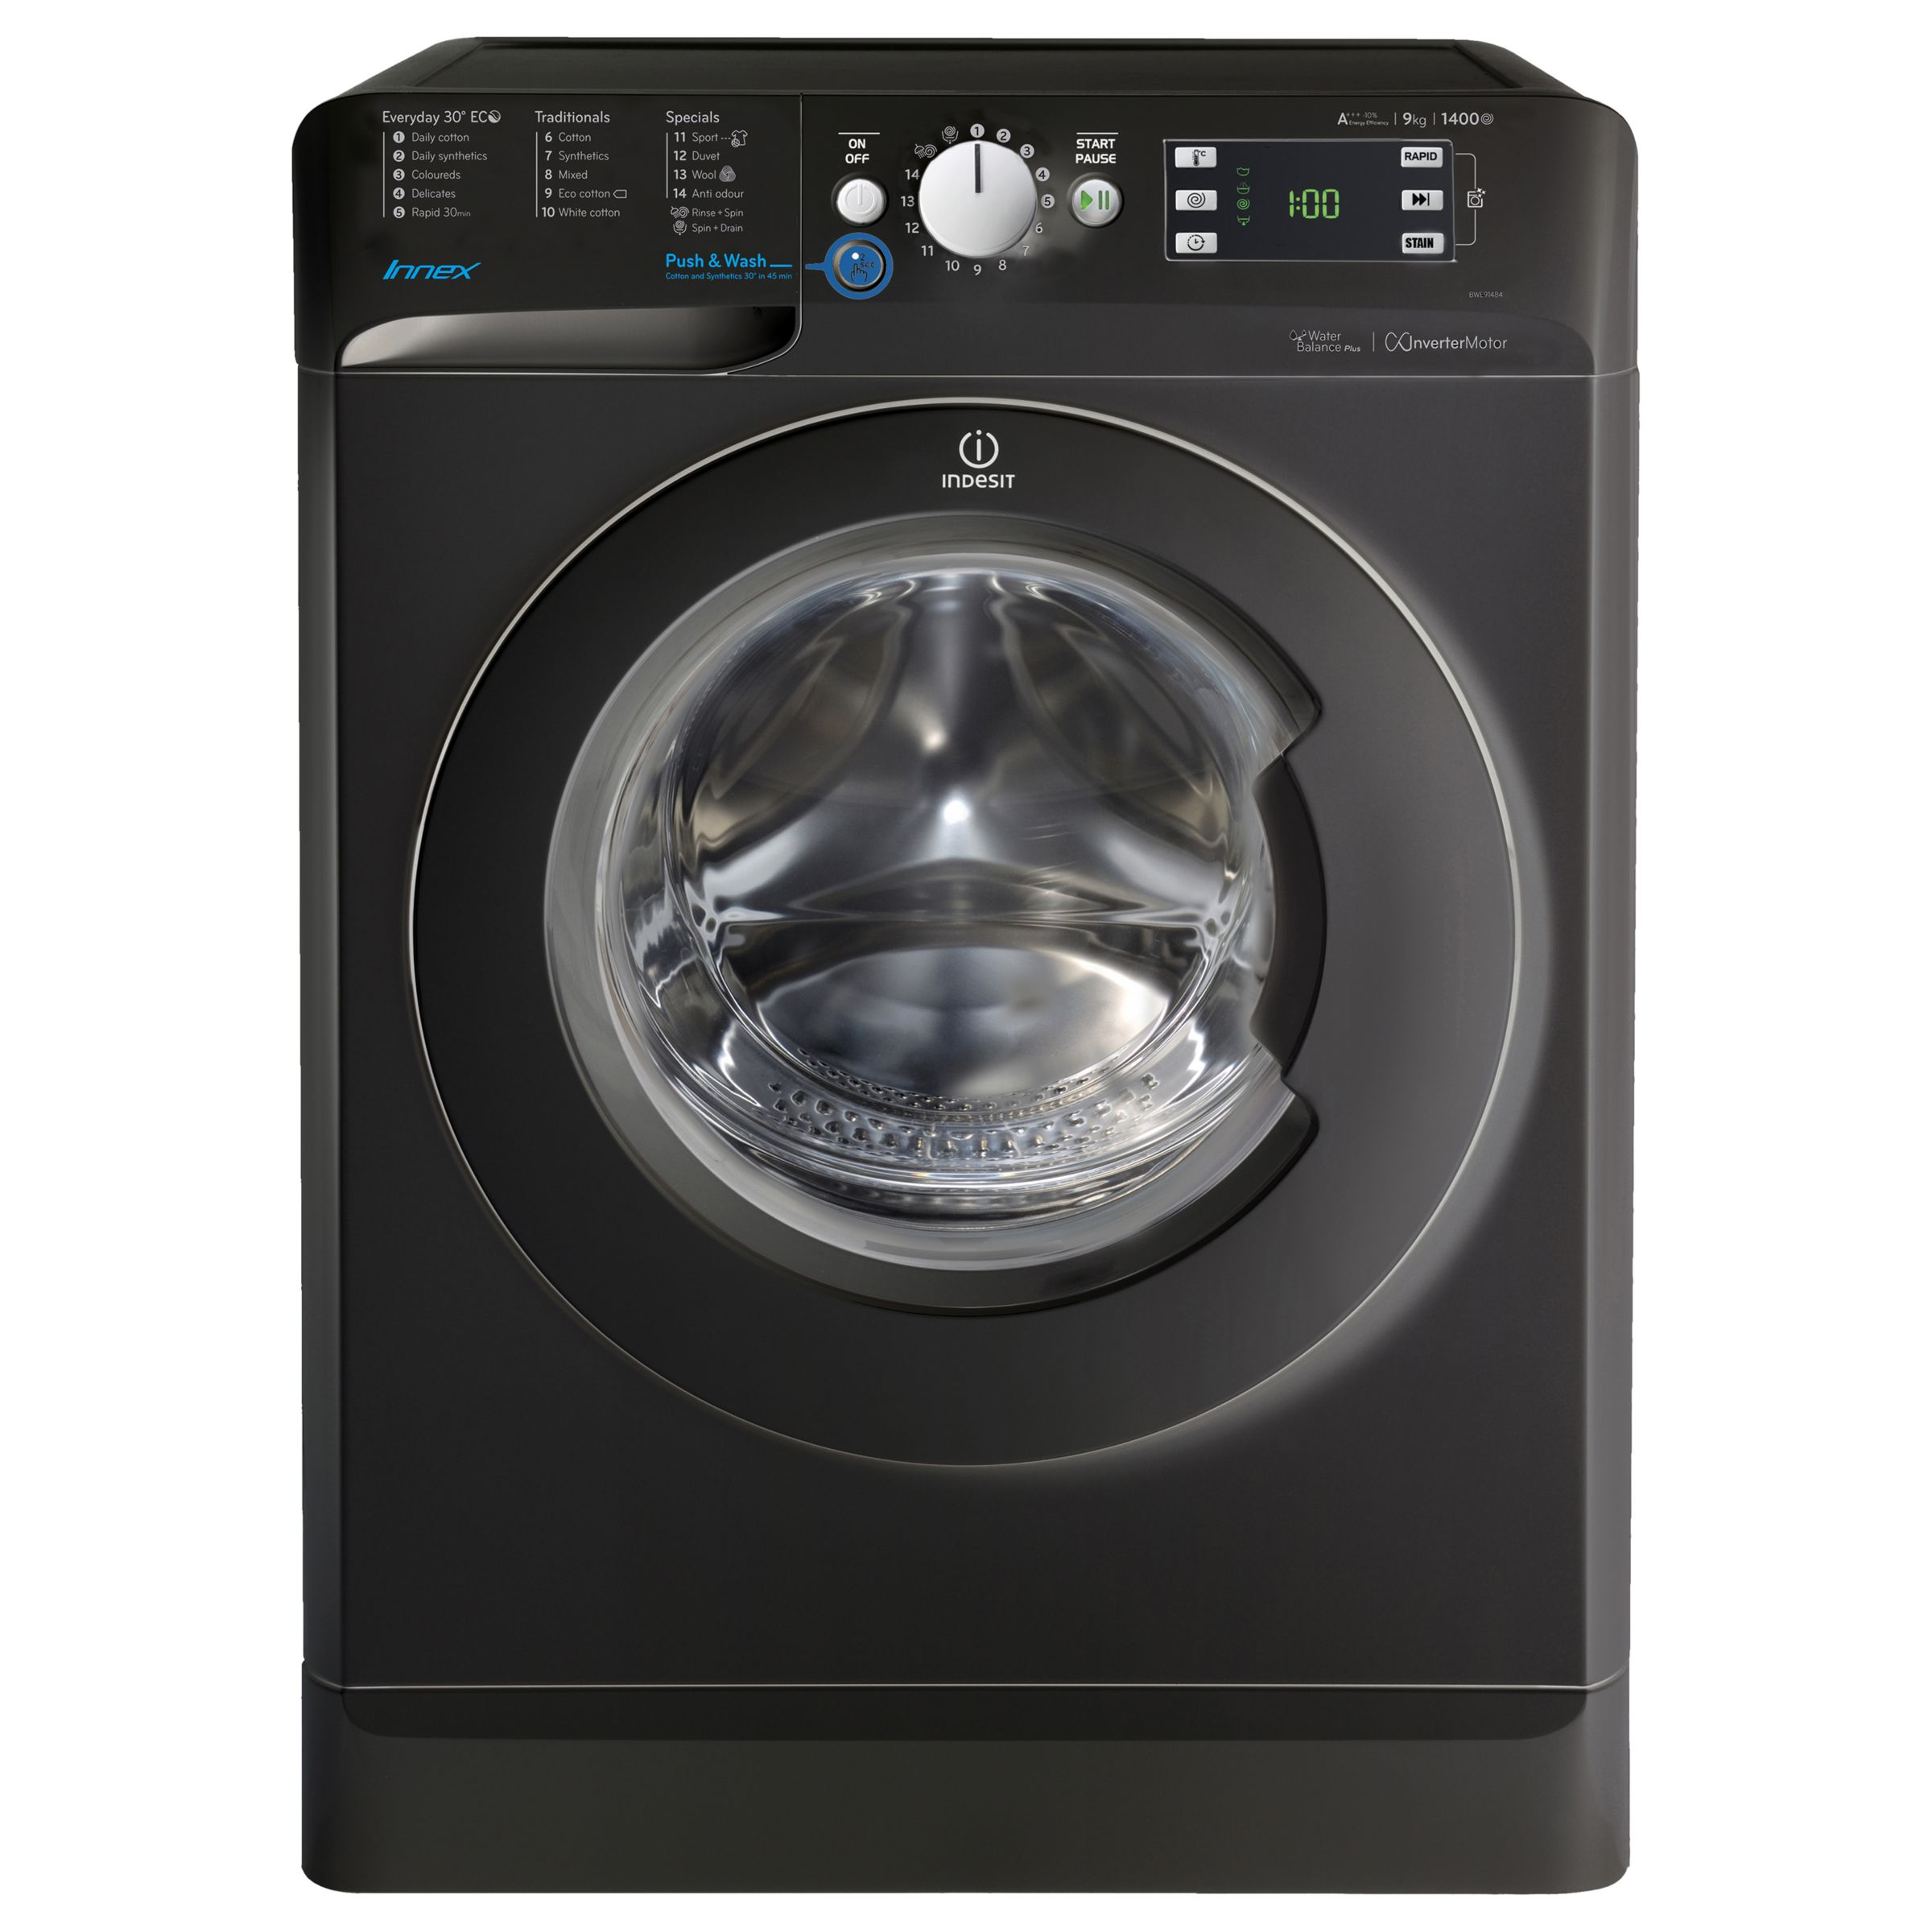 Indesit Indesit Innex BWE91484 Freestanding Washing Machine 9kg Load, A+++ Energy Rating, 1400rpm Spin